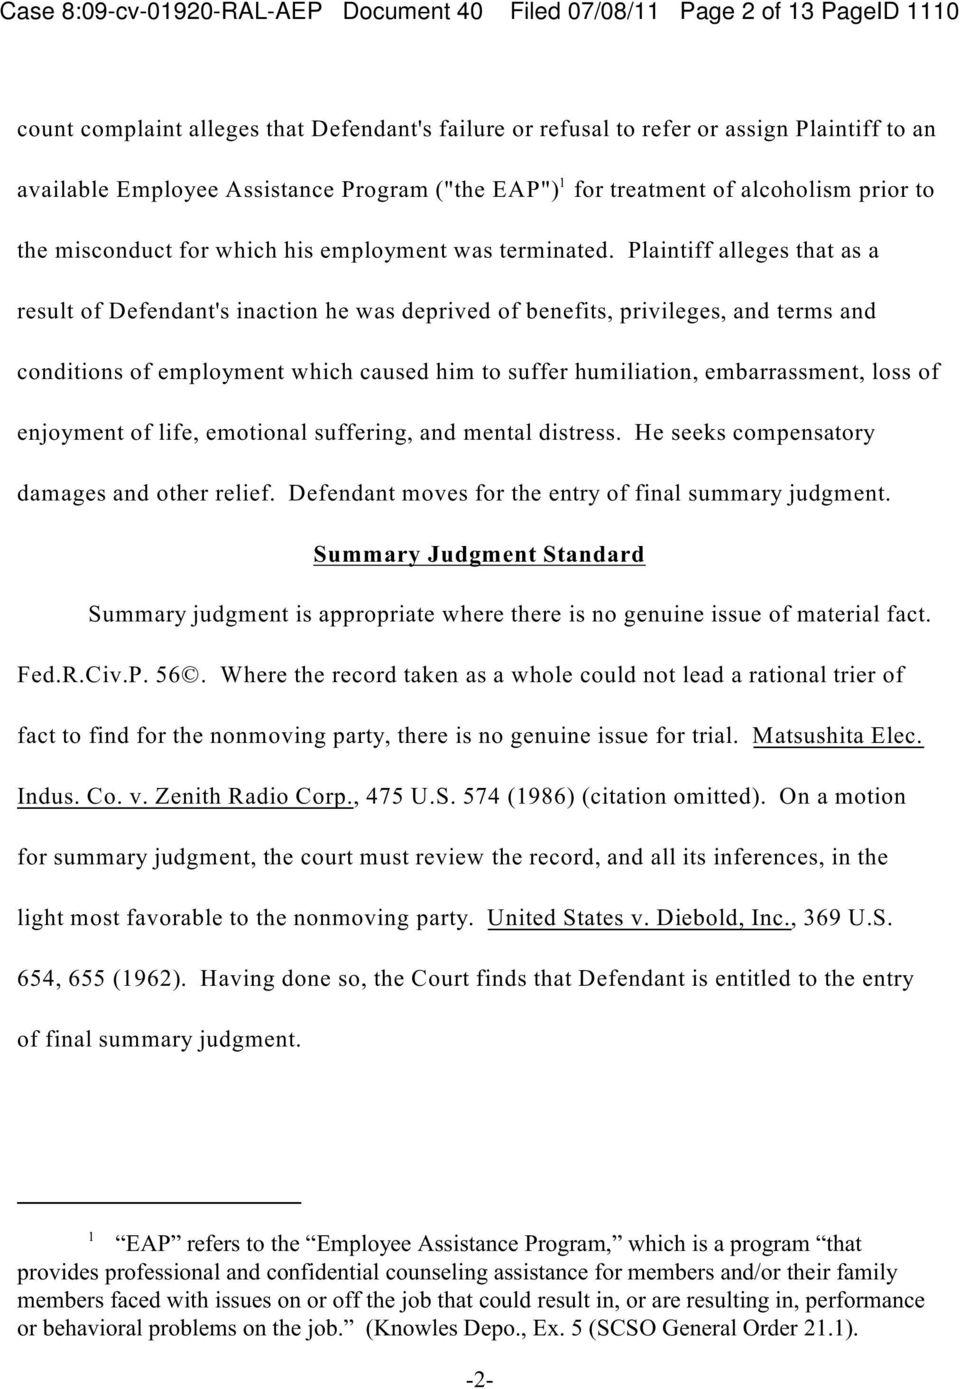 Plaintiff alleges at as a result of Defendant's inaction he was deprived of benefits, privileges, and terms and conditions of employment which caused him to suffer humiliation, embarrassment, loss of